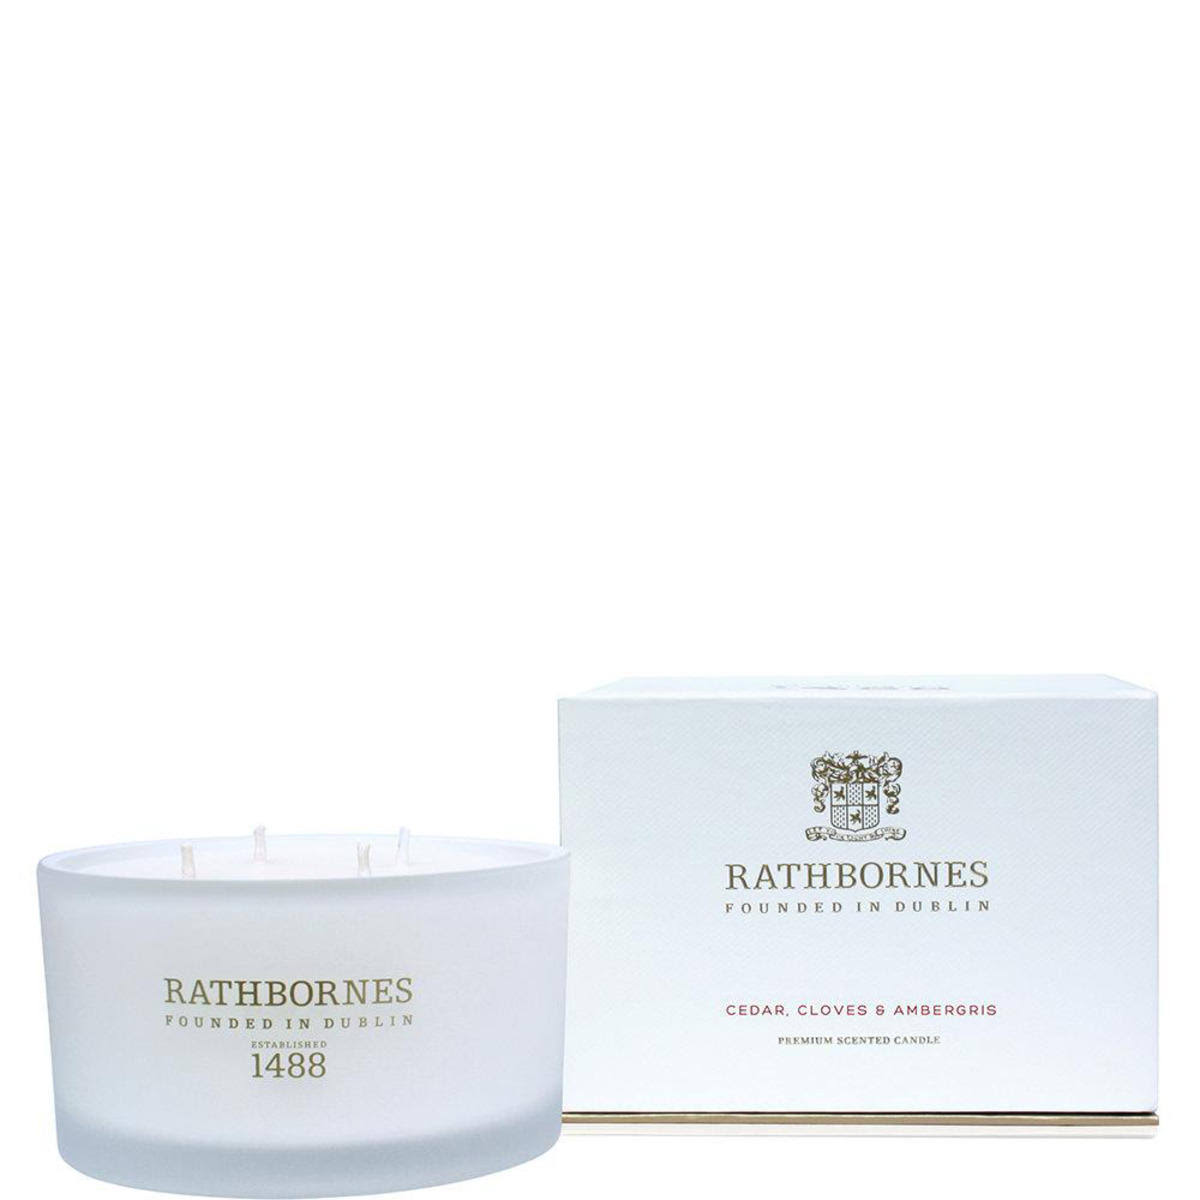 Rathbornes Scented Candle - Cedar Cloves and Ambergris